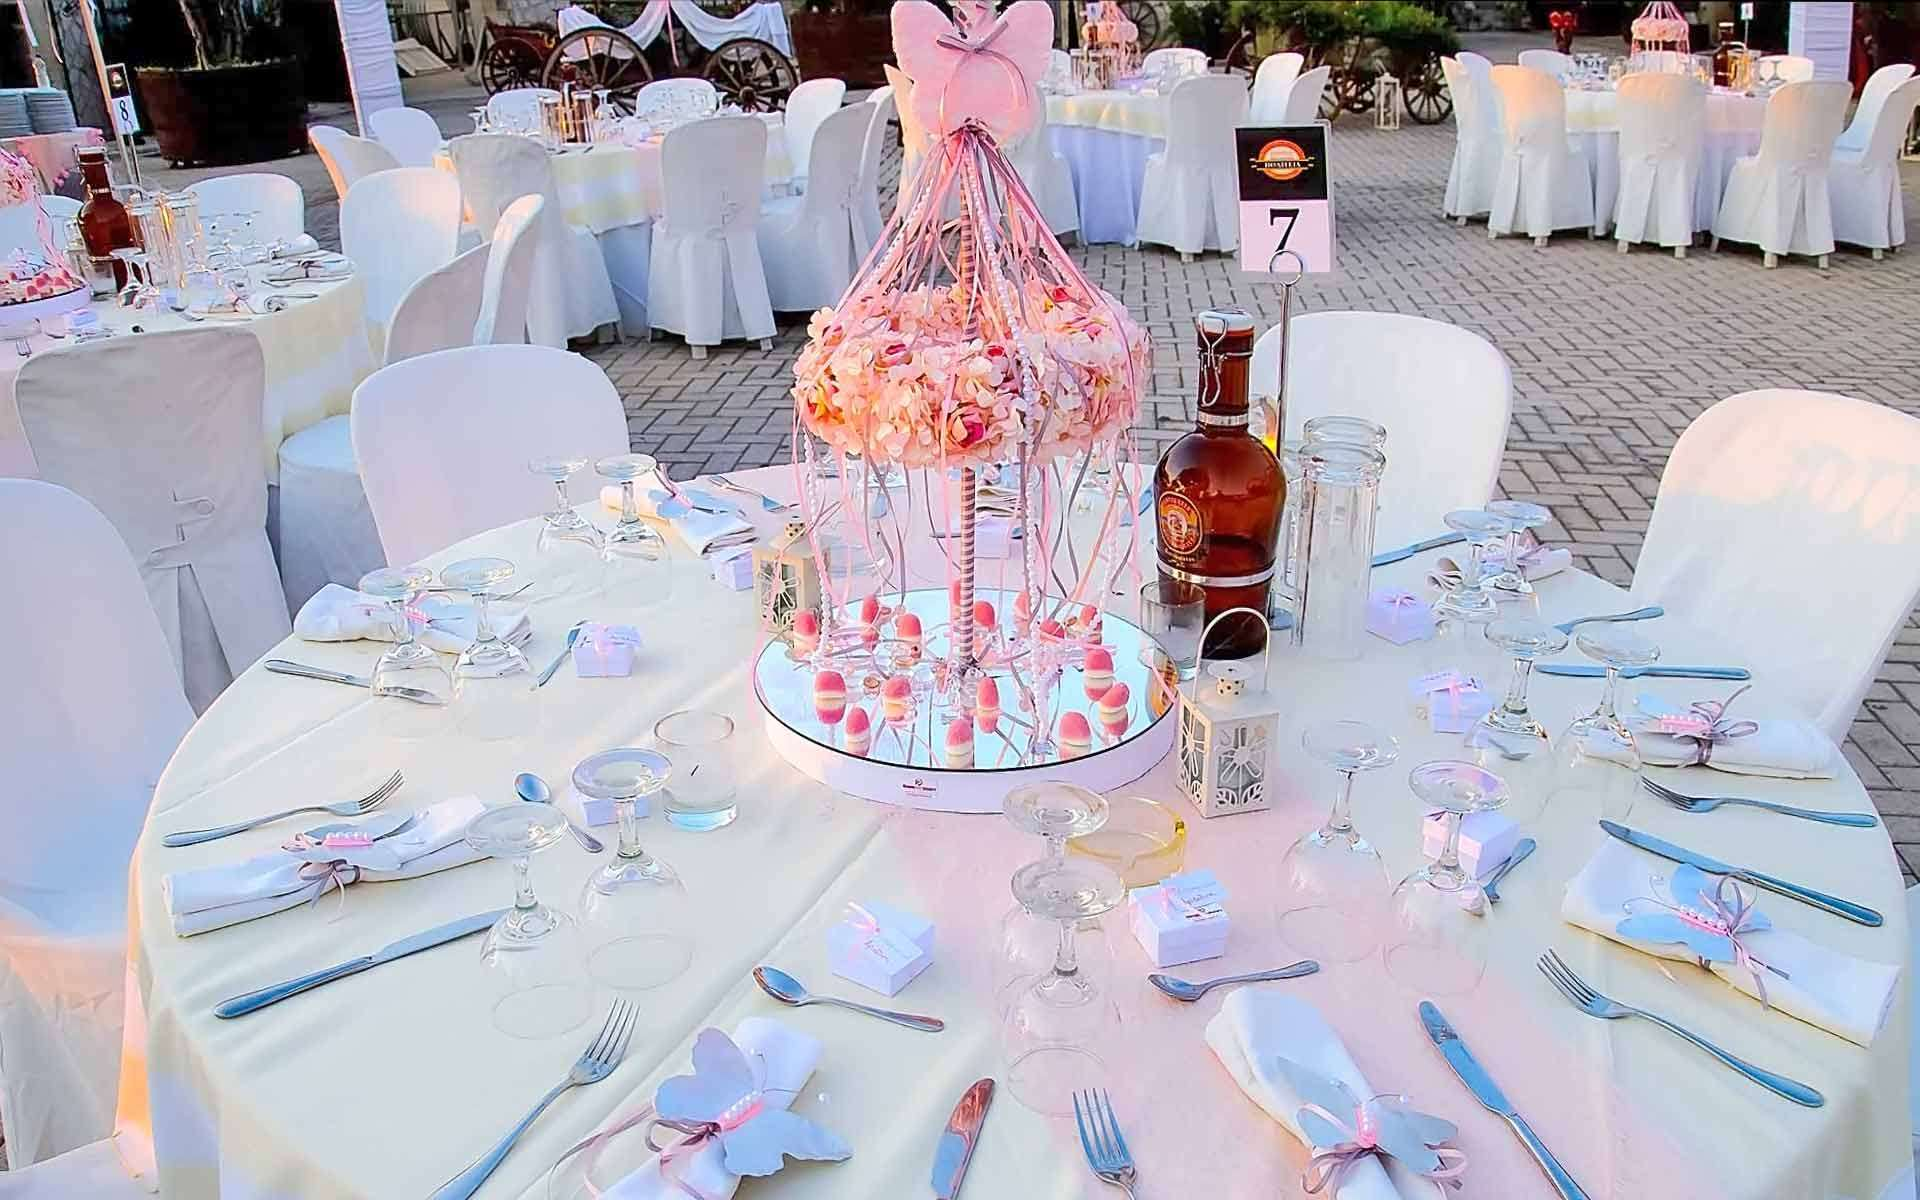 Table-Decoration-With-Pink-Carousel-In-Shades-Of-Pink-With-Floral-Wreath-And-Pink-Ribbons